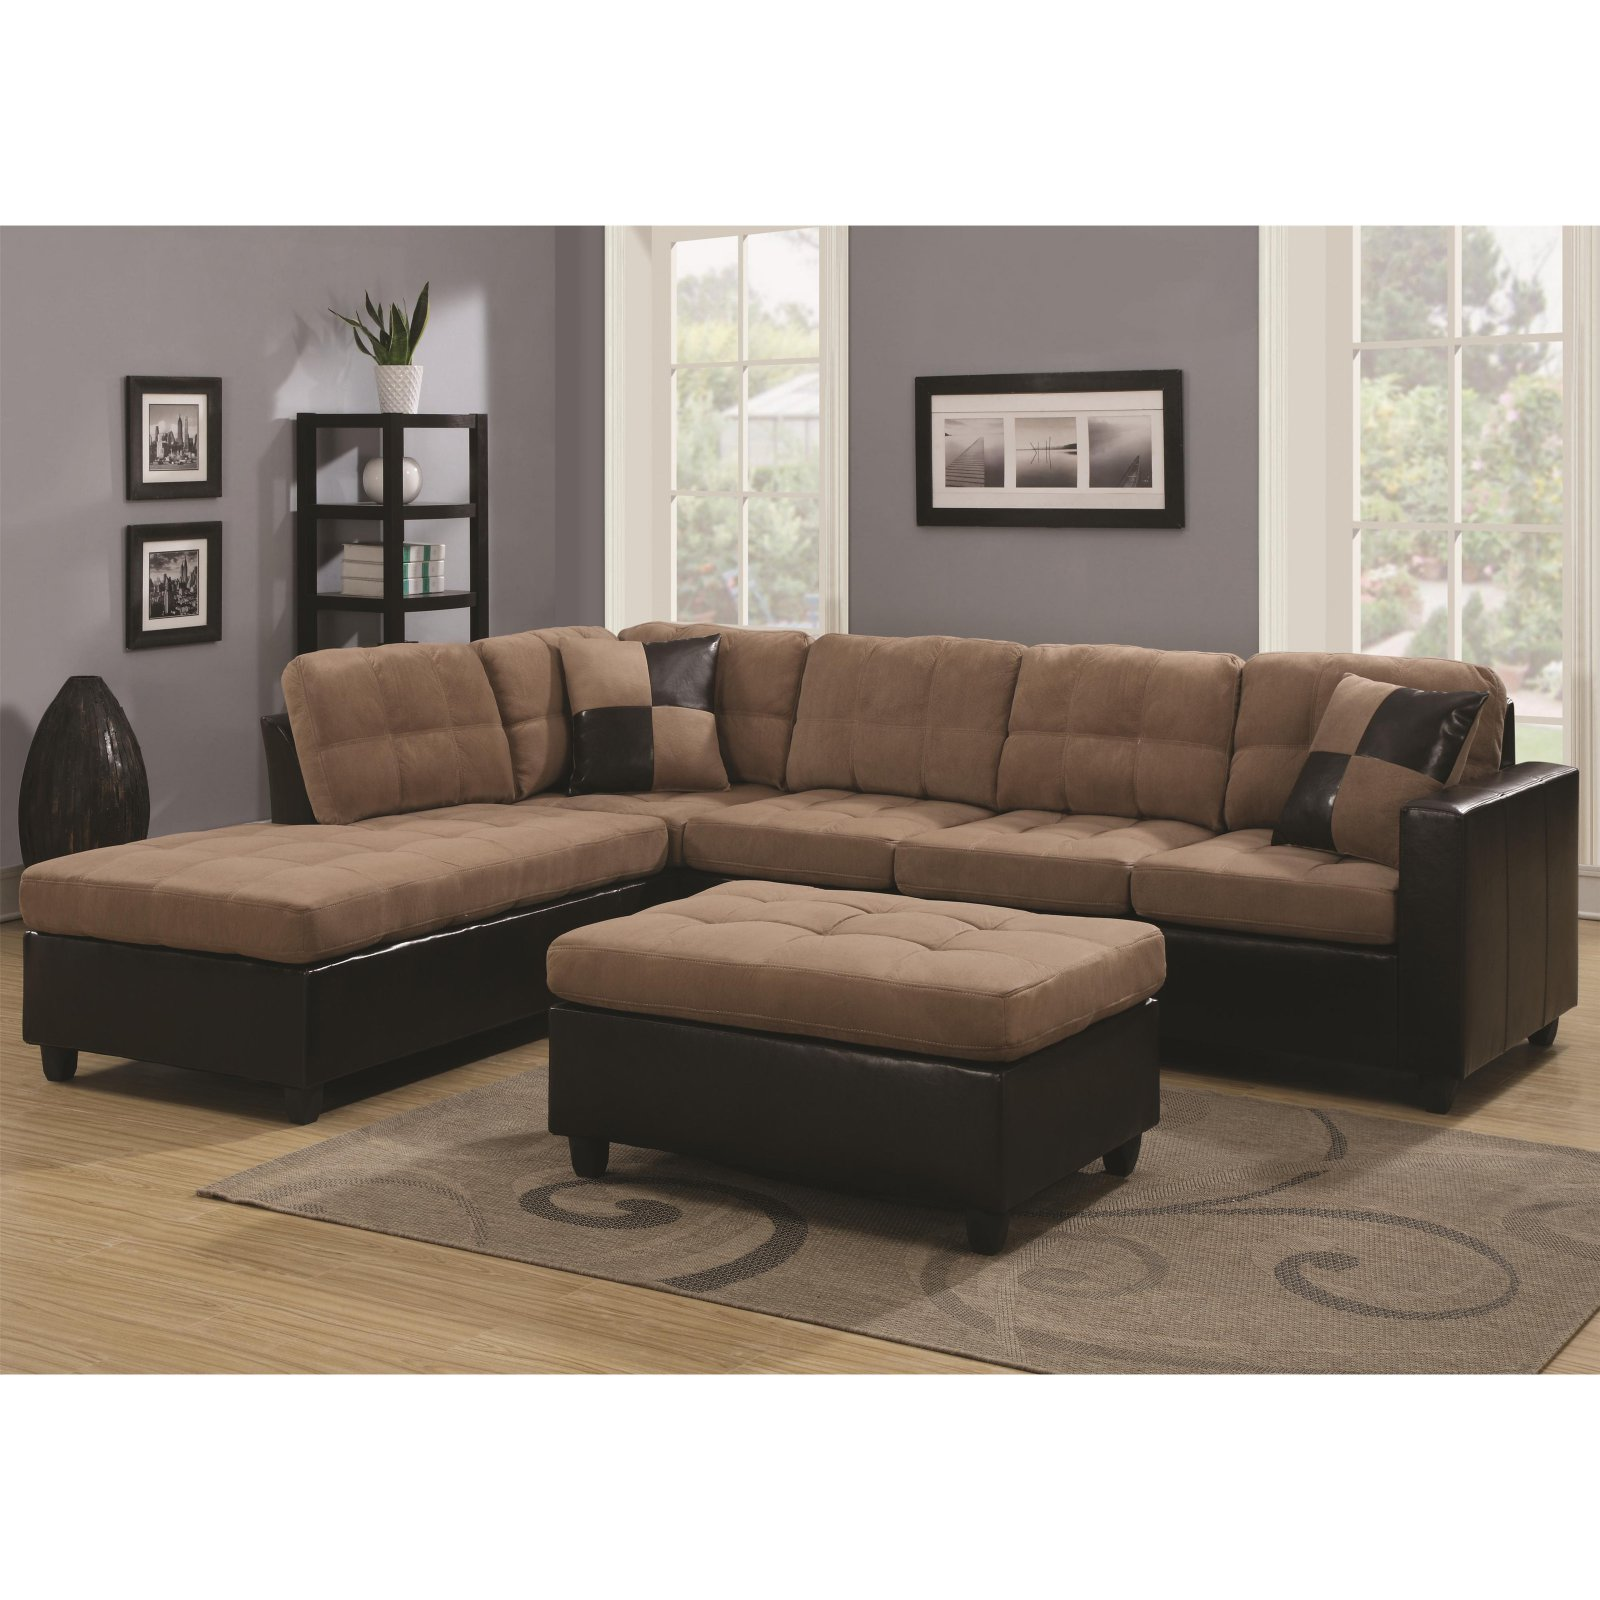 Coaster Furniture Mallory Sectional